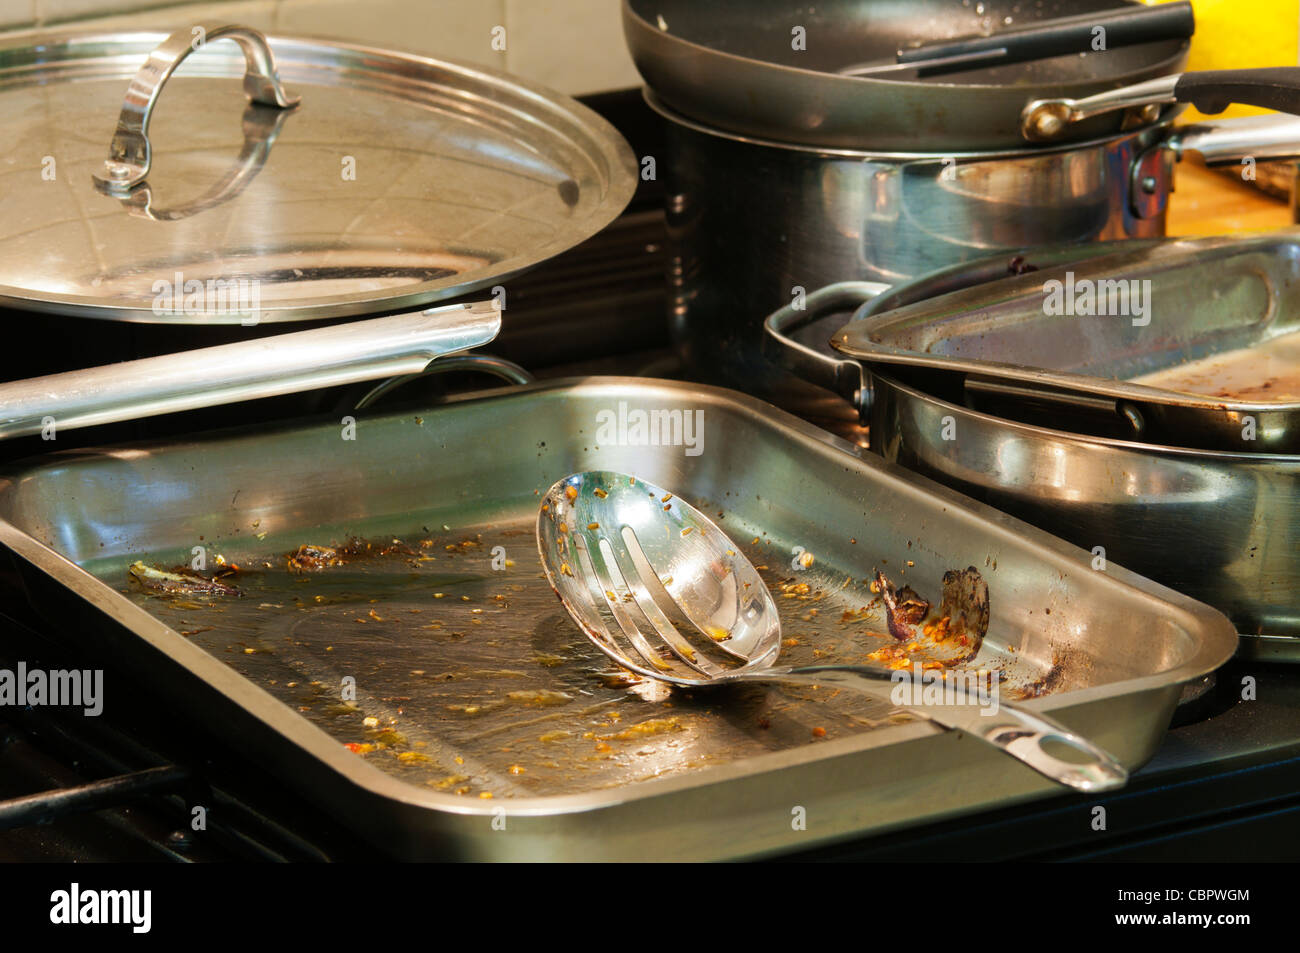 A selection of roasting tins, saucepans and frying pans in a kitchen waiting to be washed up. - Stock Image